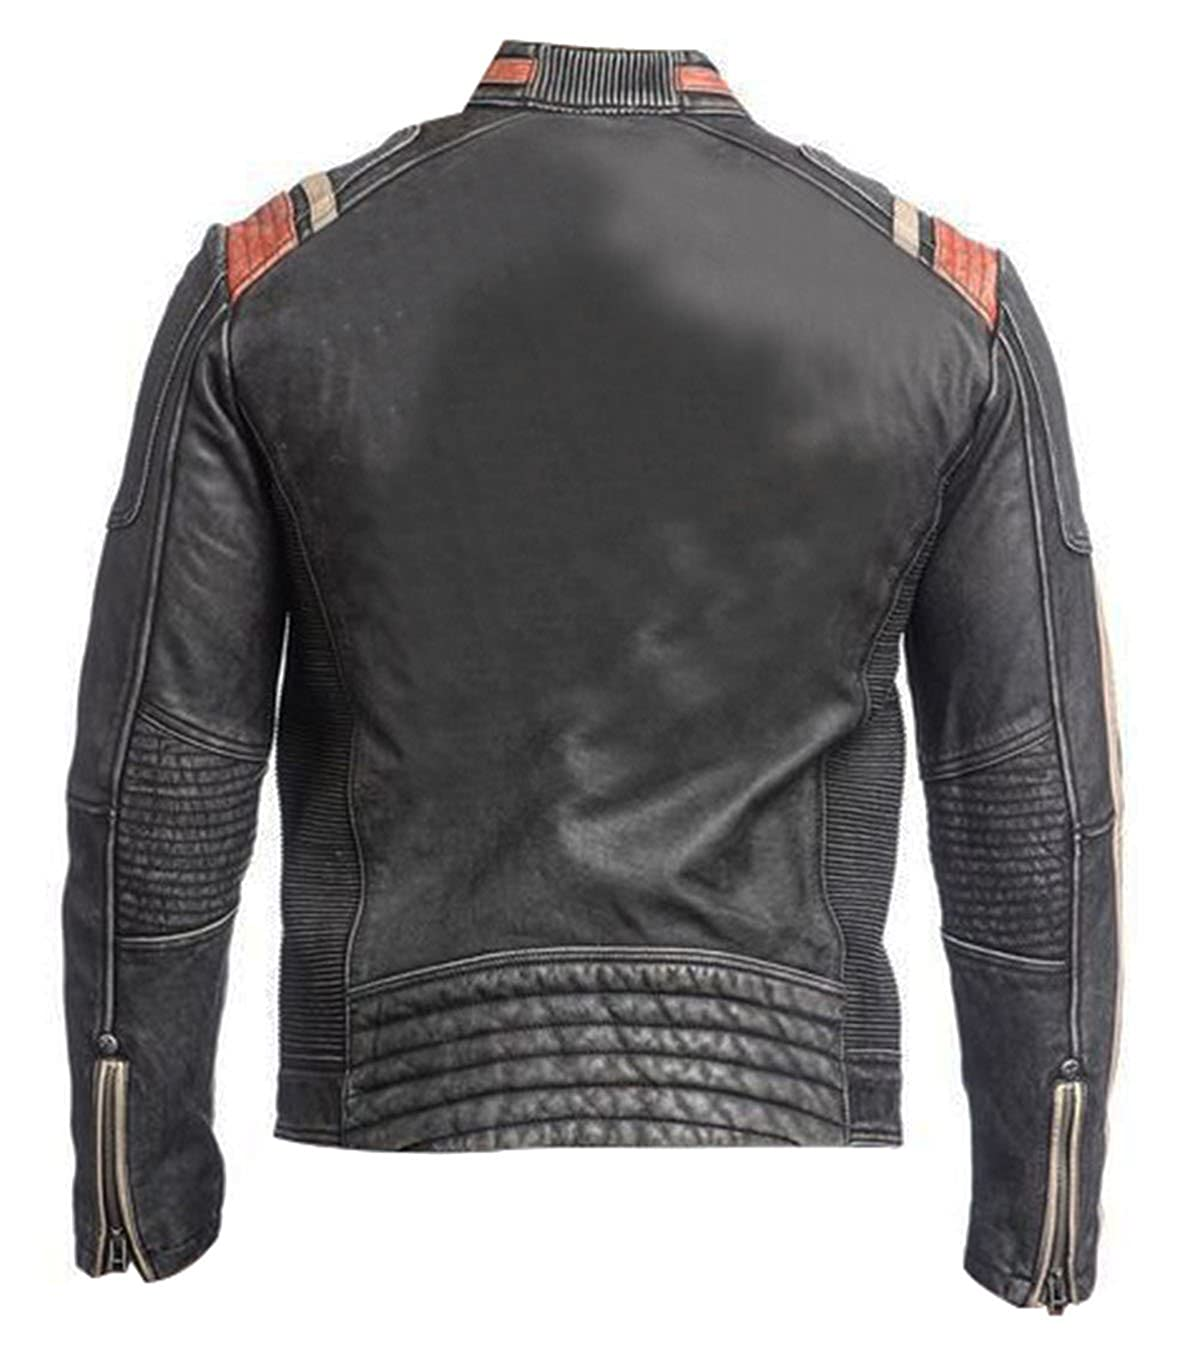 120cc55a48b Spazeup Cafe Racer Jacket Vintage Motorcycle Retro Moto Distressed Leather  Jacket at Amazon Men s Clothing store